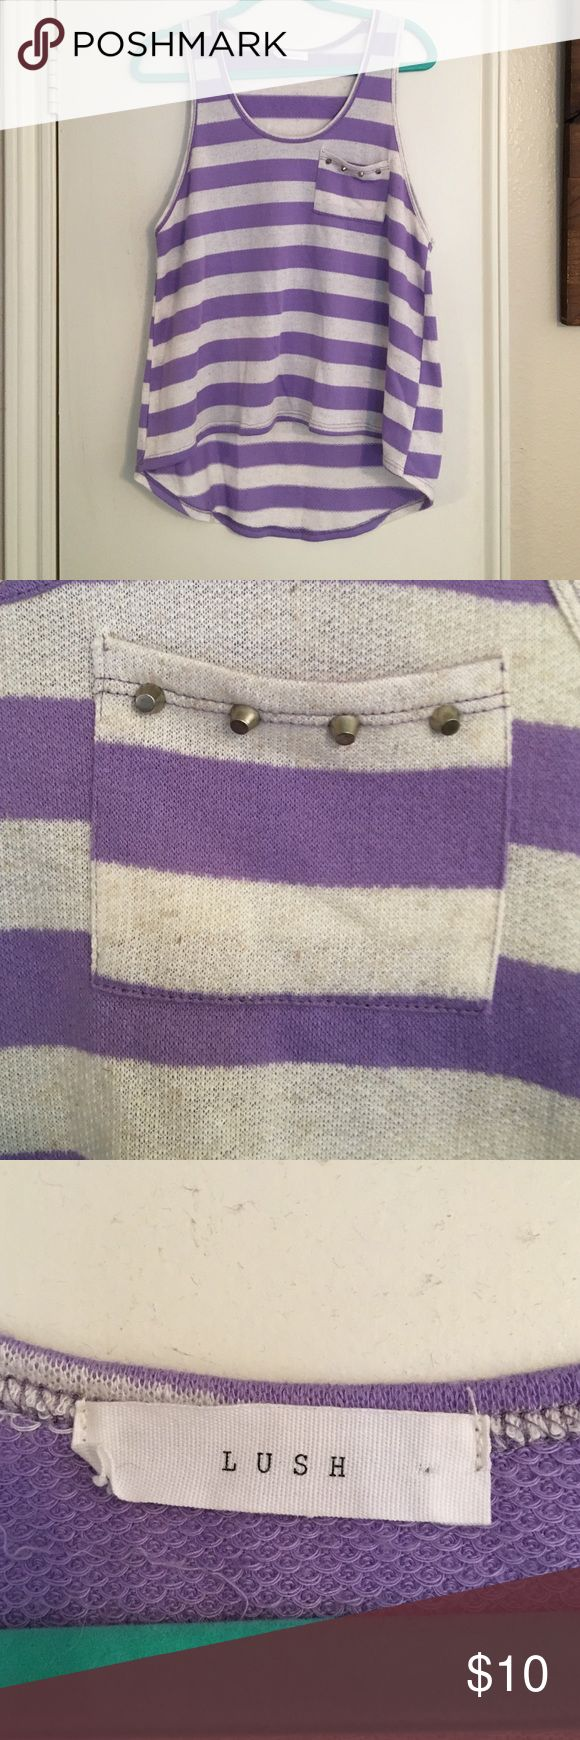 Striped Tank Top Light purple and white striped tank with pocket and studded detail. Only worn twice. Lush Tops Tank Tops